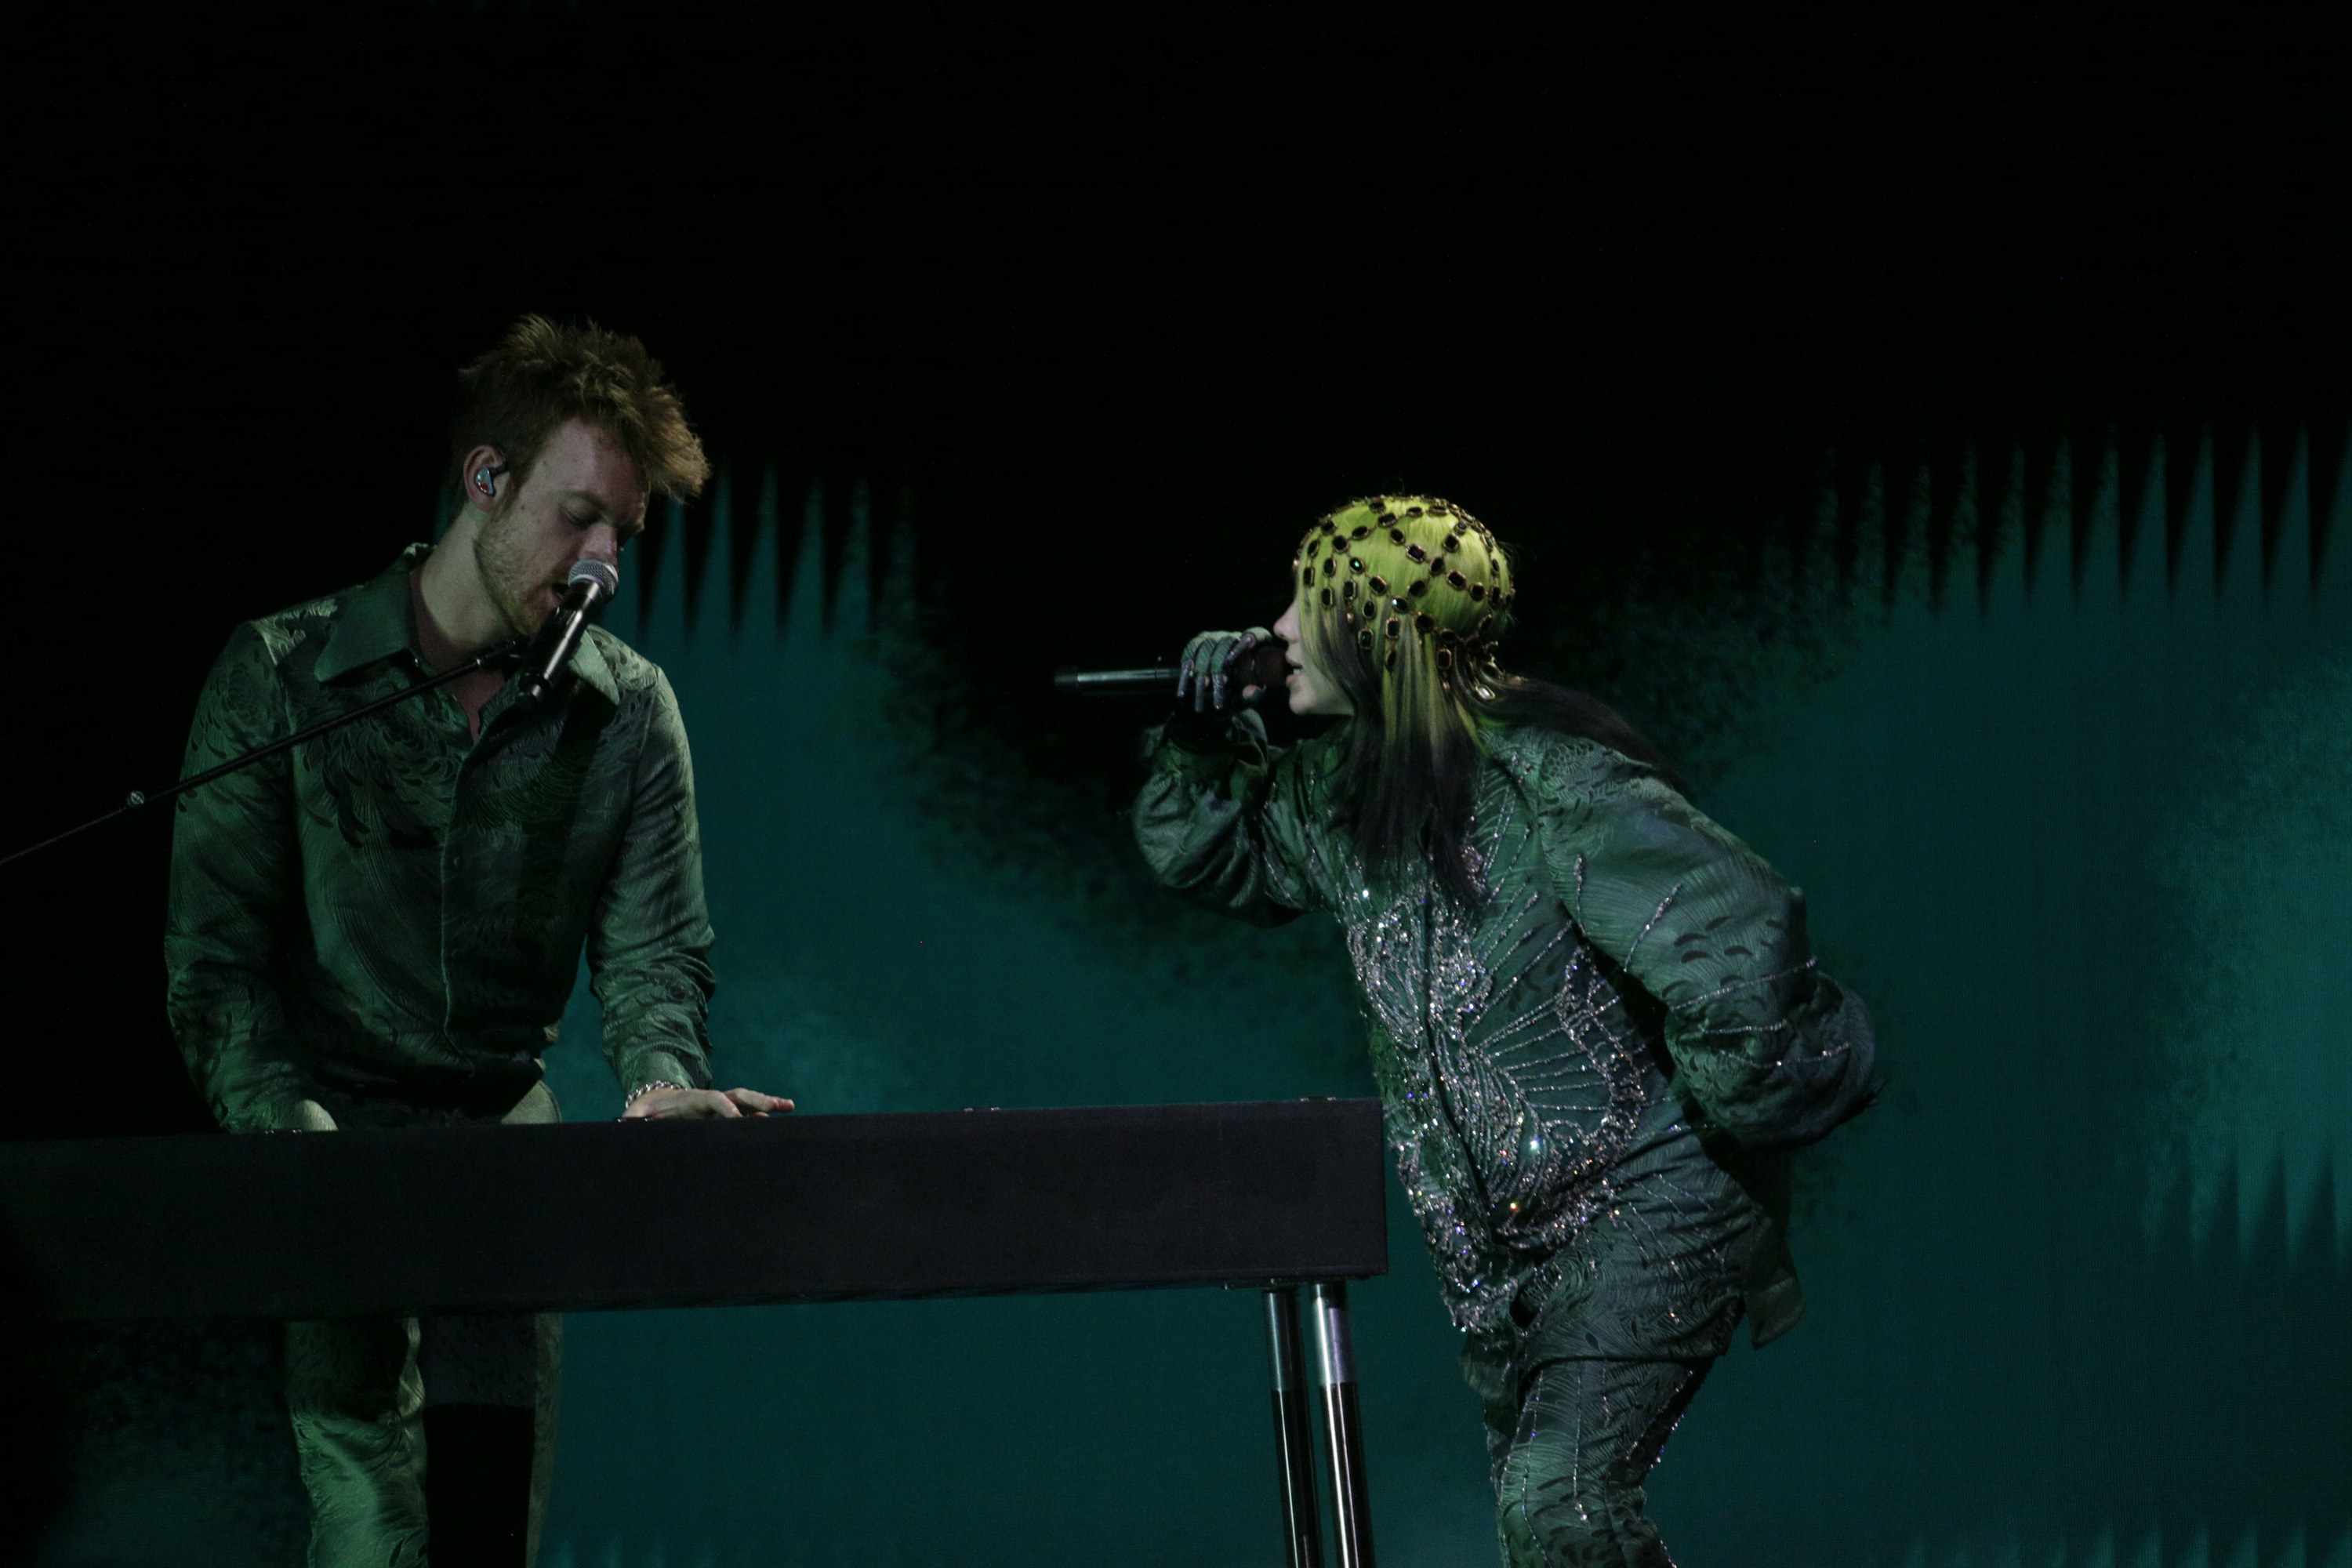 Billie wearing a bejeweled headpiece while performing at the Grammys